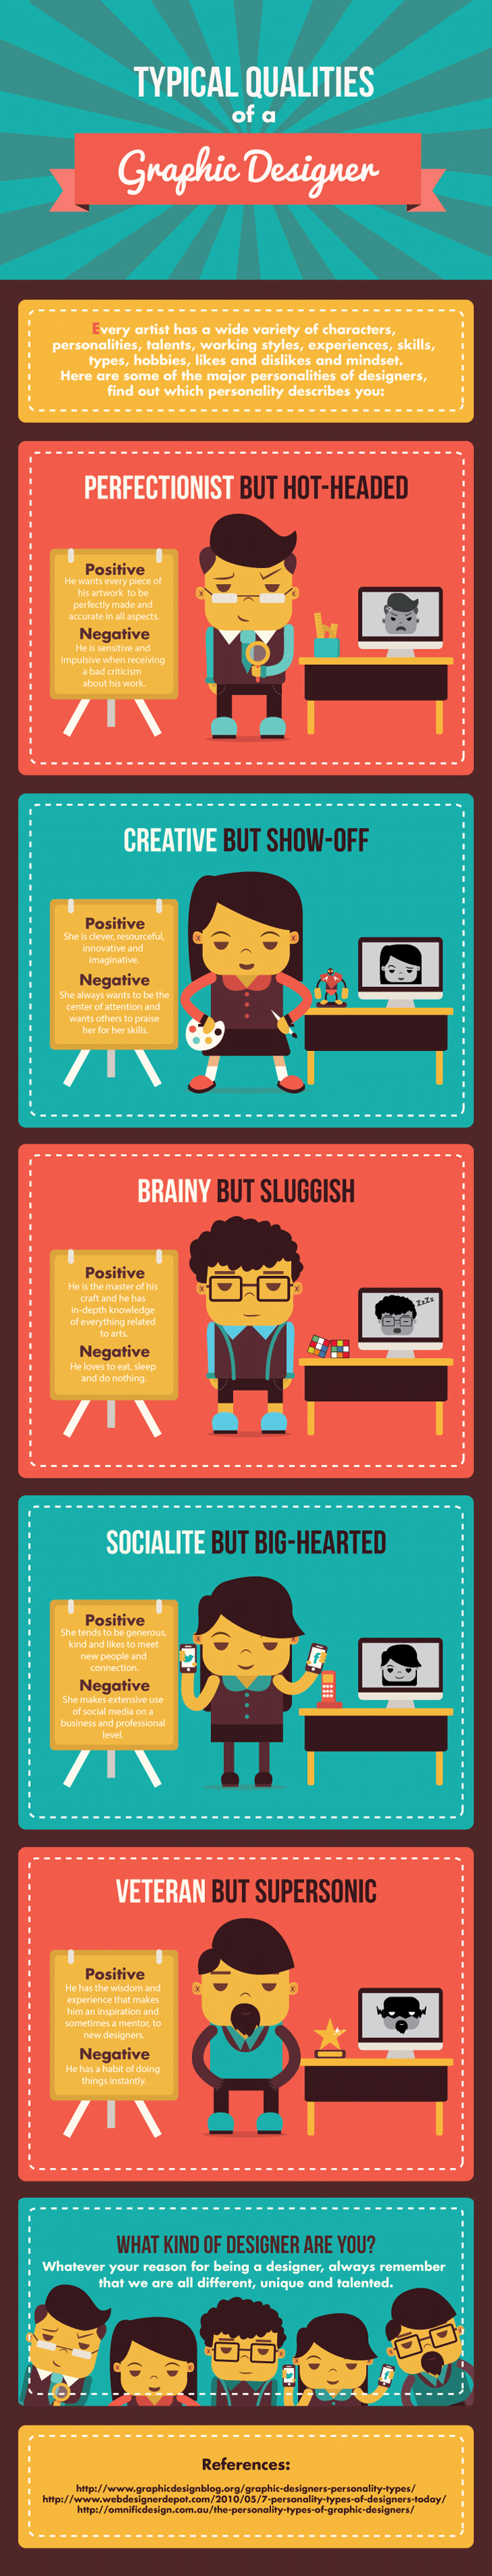 Typical Personalities of a Graphic Designer Graphic